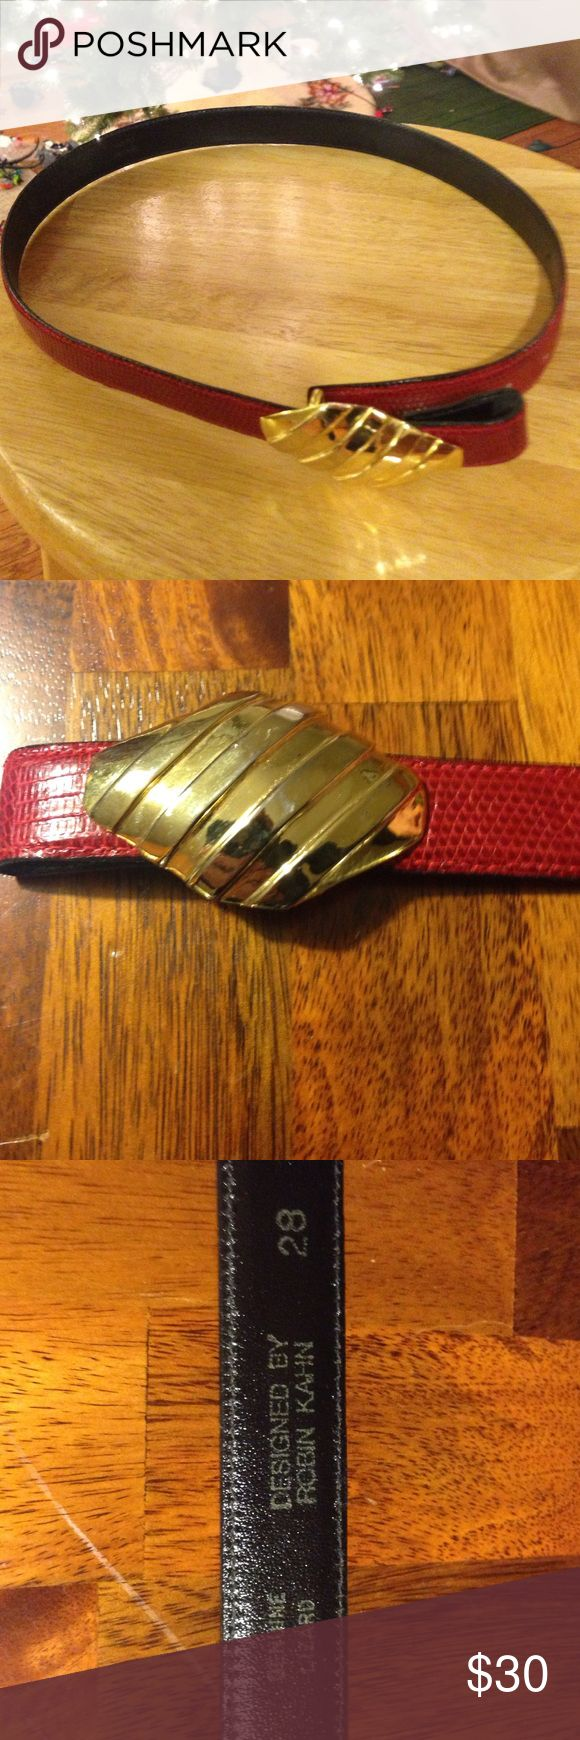 Robert Kahn Belt, Genuine Lizard Size 28.  Vintage, In good condition. Robert Kahn Accessories Belts